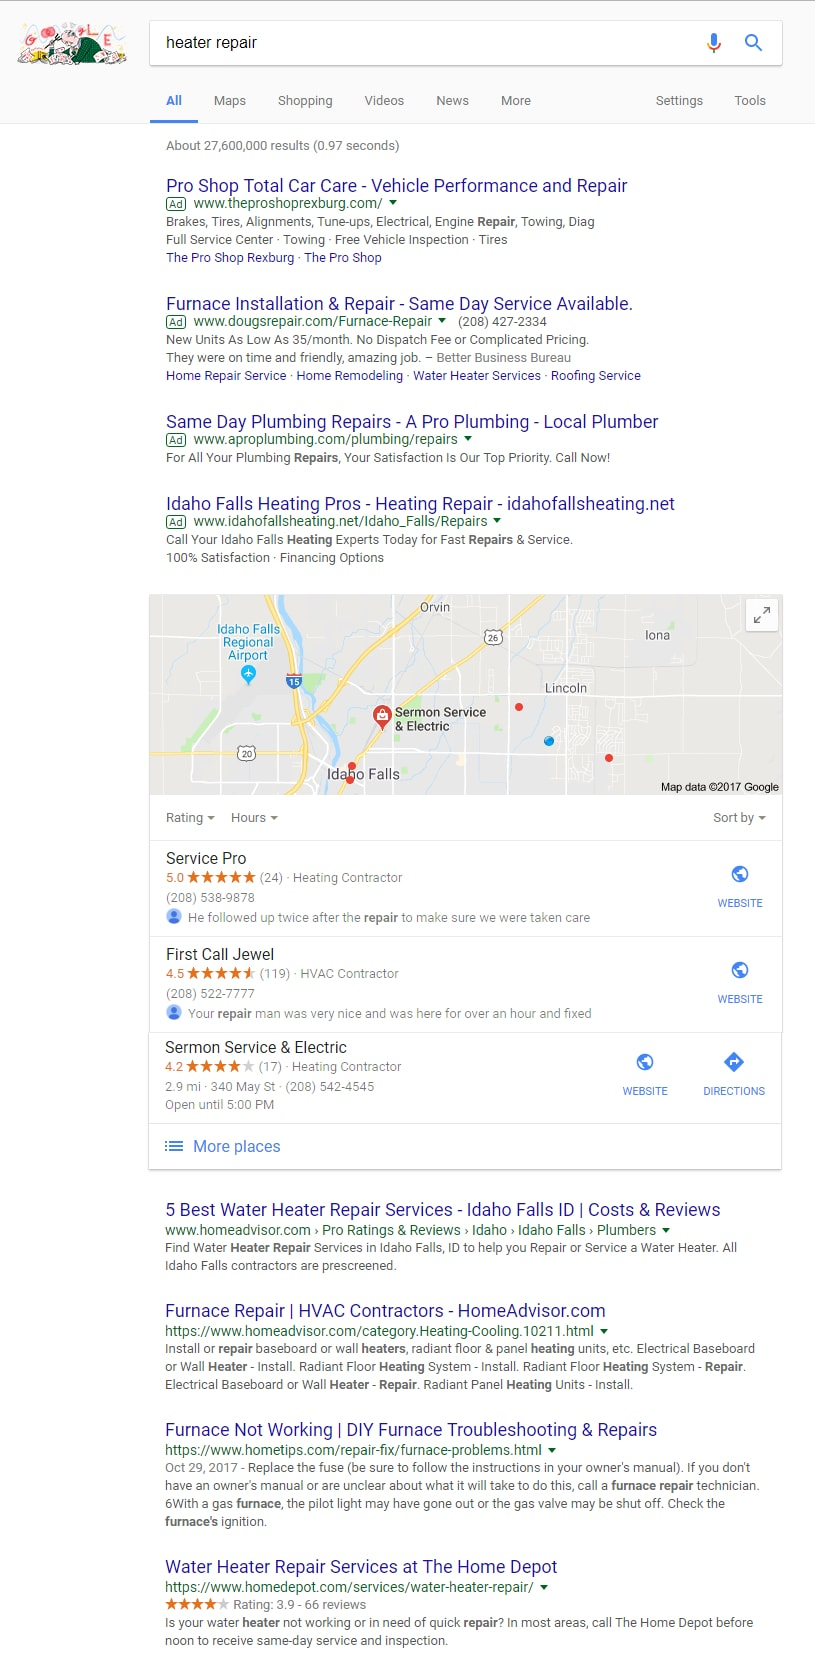 """Sample search results for """"heater repair"""""""